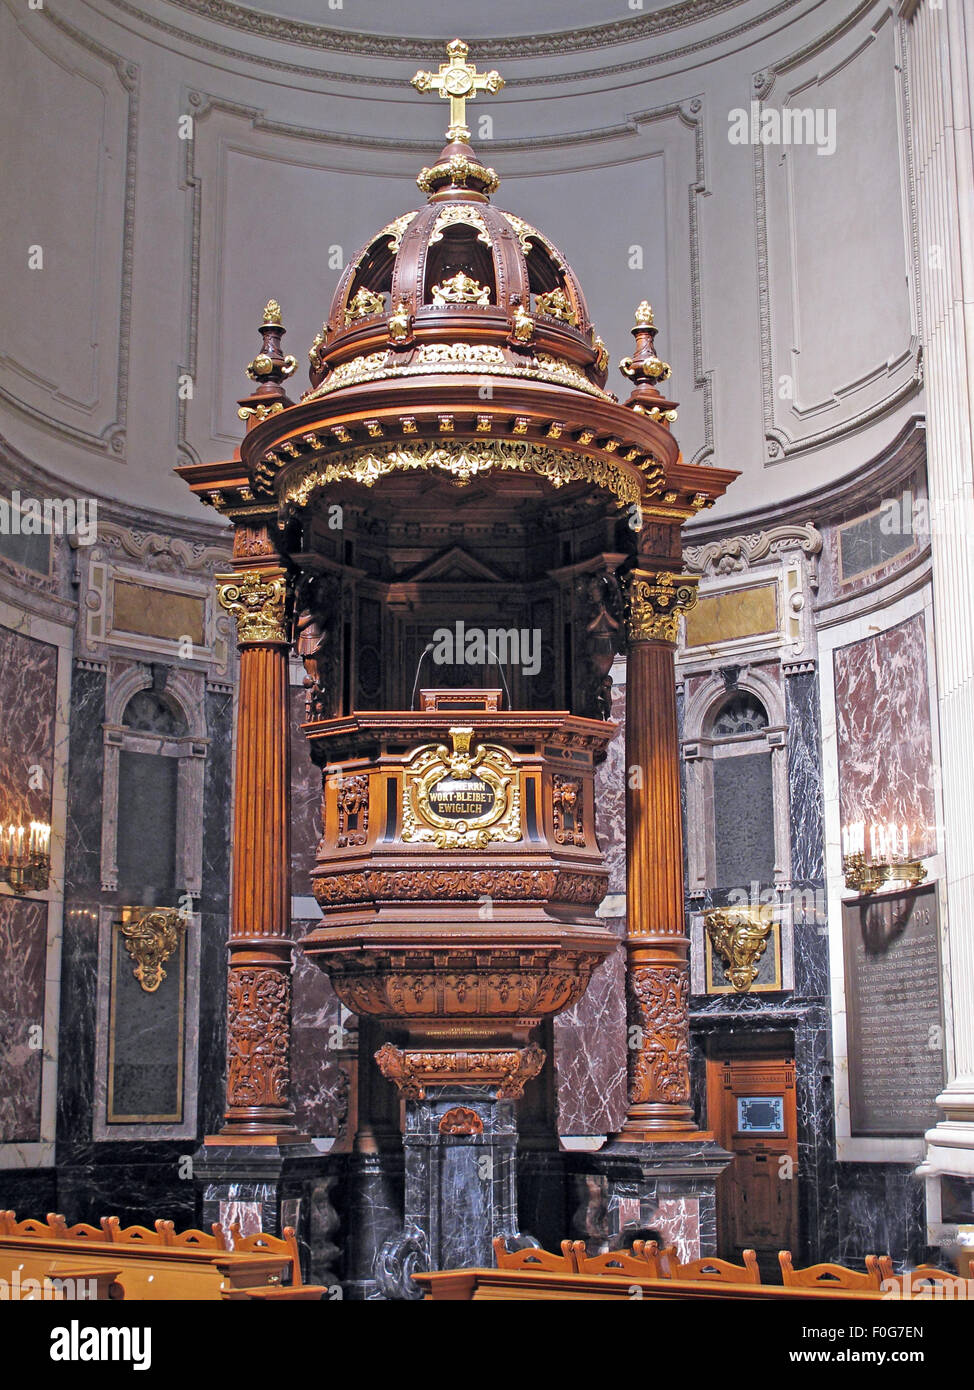 Ornate,wood,wooden,gold,pulpit,crucifix,history,historic,in,the,inside,interior,marble,Berlin Cathedral,Berliner Dom,built,building,in,1905,by,King Frederick,William IV,protestant,architecture,baroque,basilica,berlin,berliner,capital,cathedral,church,city,cross,dom,dome,europe,european,GoTonySmith,evangelical,facade,german,germany,gold,interior,island,lutheran,mitte,museum,ornate,pulpit,religion,religious,spree,tourism,travel,Colln,Cölln,western,marbled,Luther,Luthur,Evangelical,Church,Supreme,Parish,Collegiate,Deutsche,Deutschland,Buy Pictures of,Buy Images Of